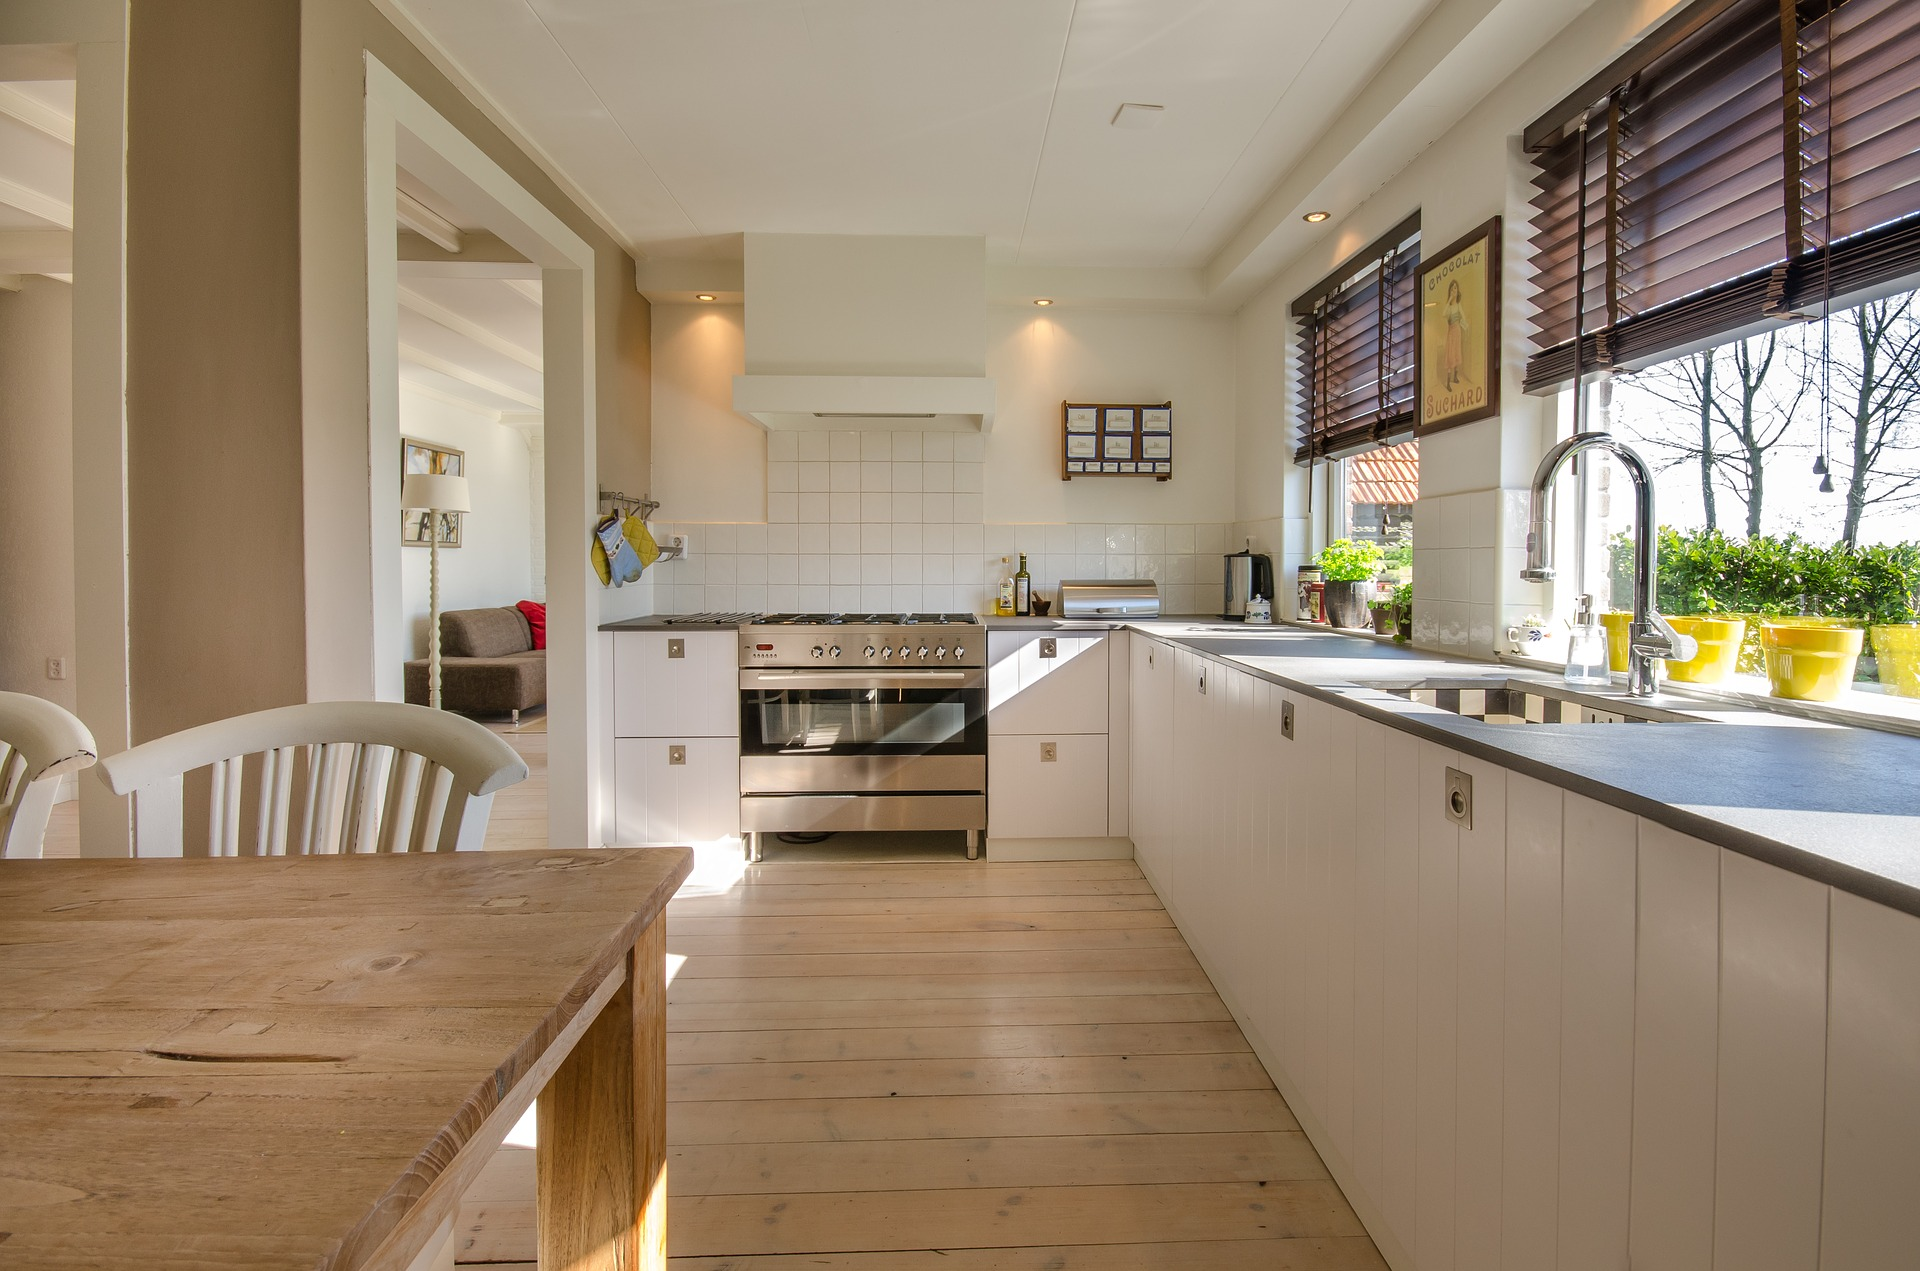 Make The Most Of Your Parkland Kitchen Space! 7 Time-tested Organizing Tips